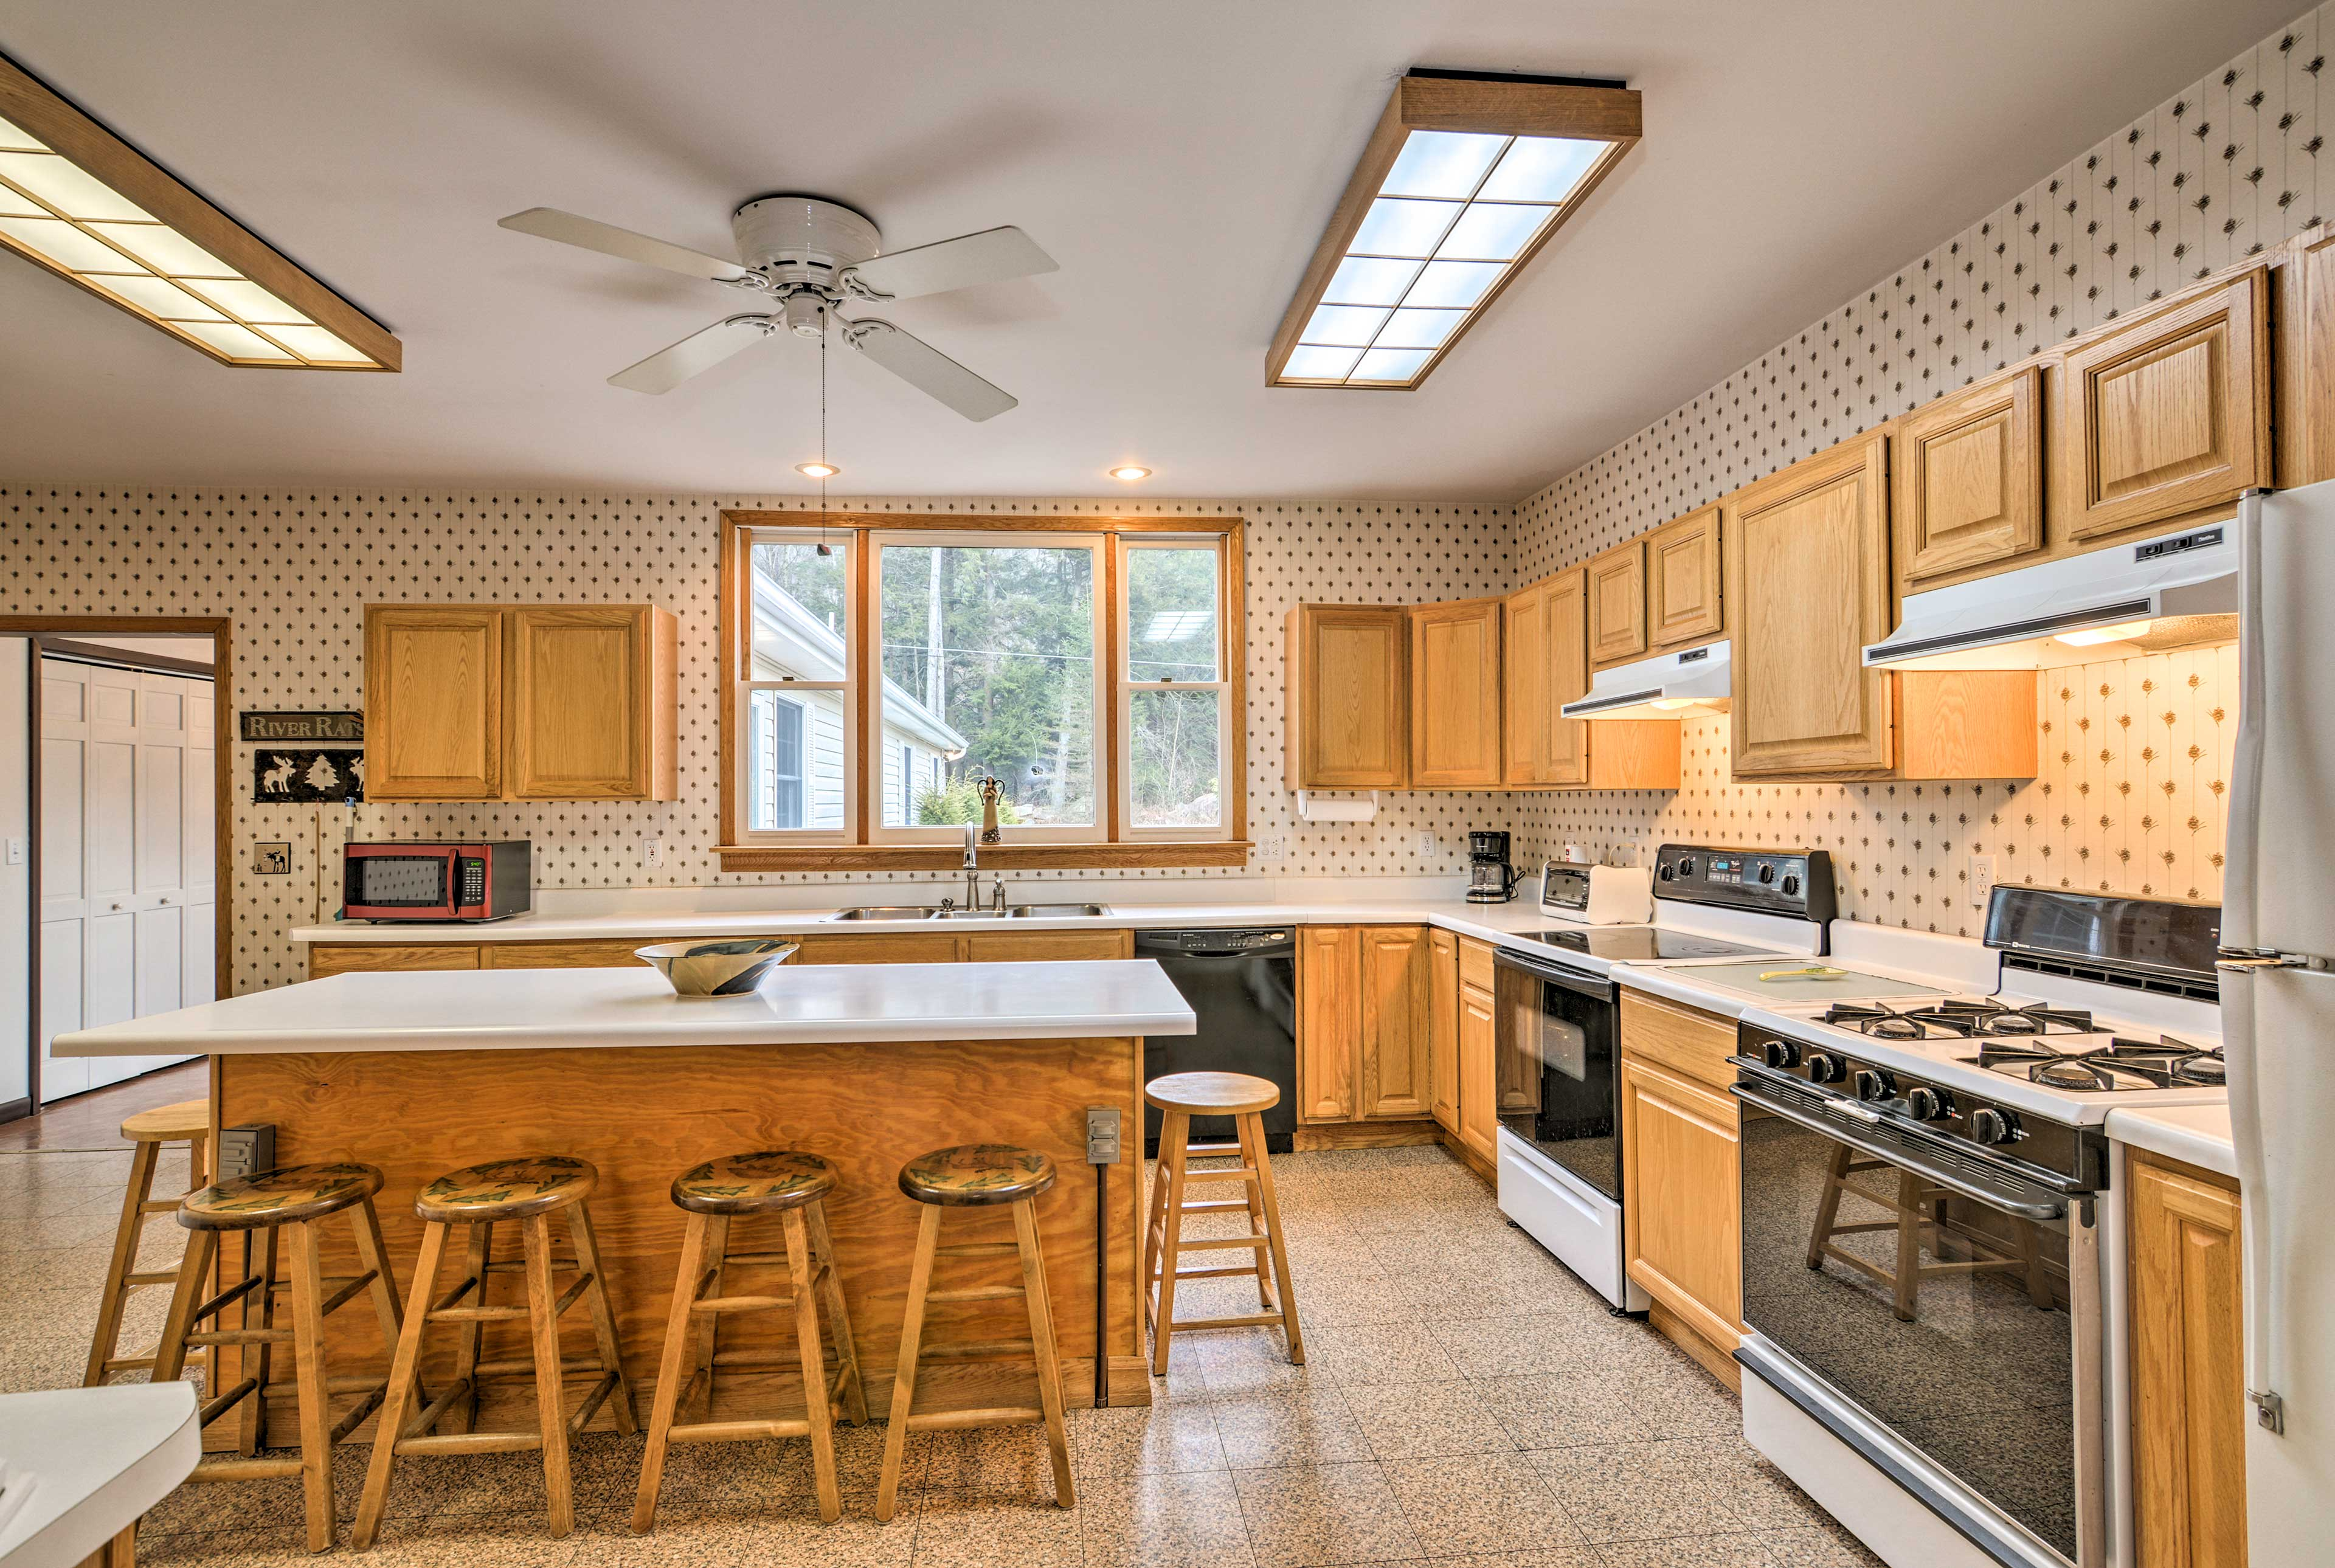 The kitchen has 2 ovens; making large meals will be a breeze!